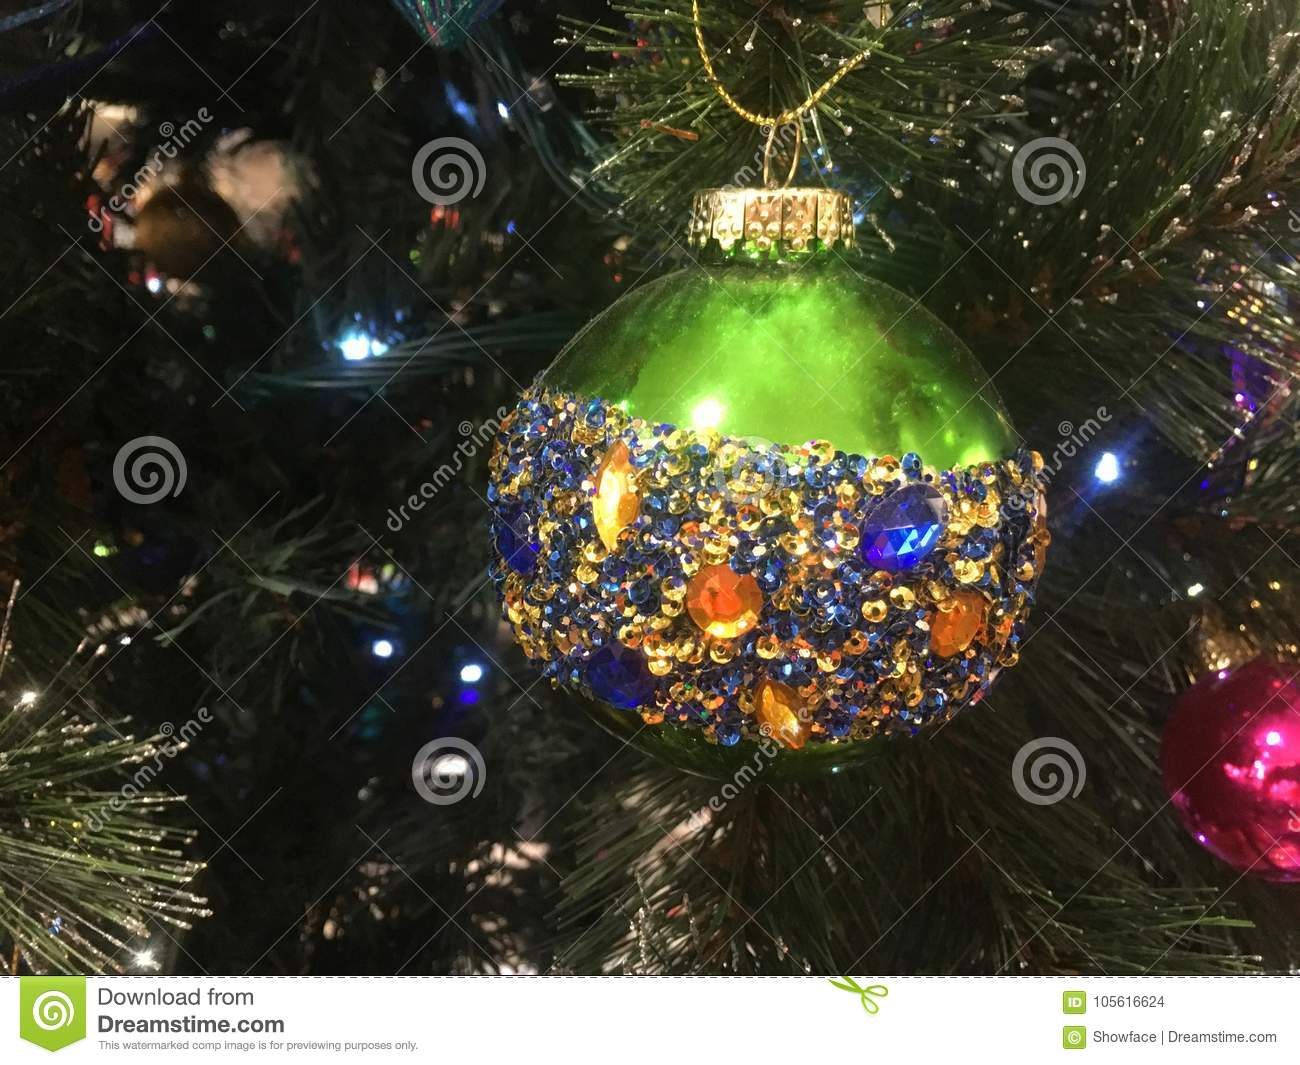 Green Christmas tree bauble embellished with amber blue and gold